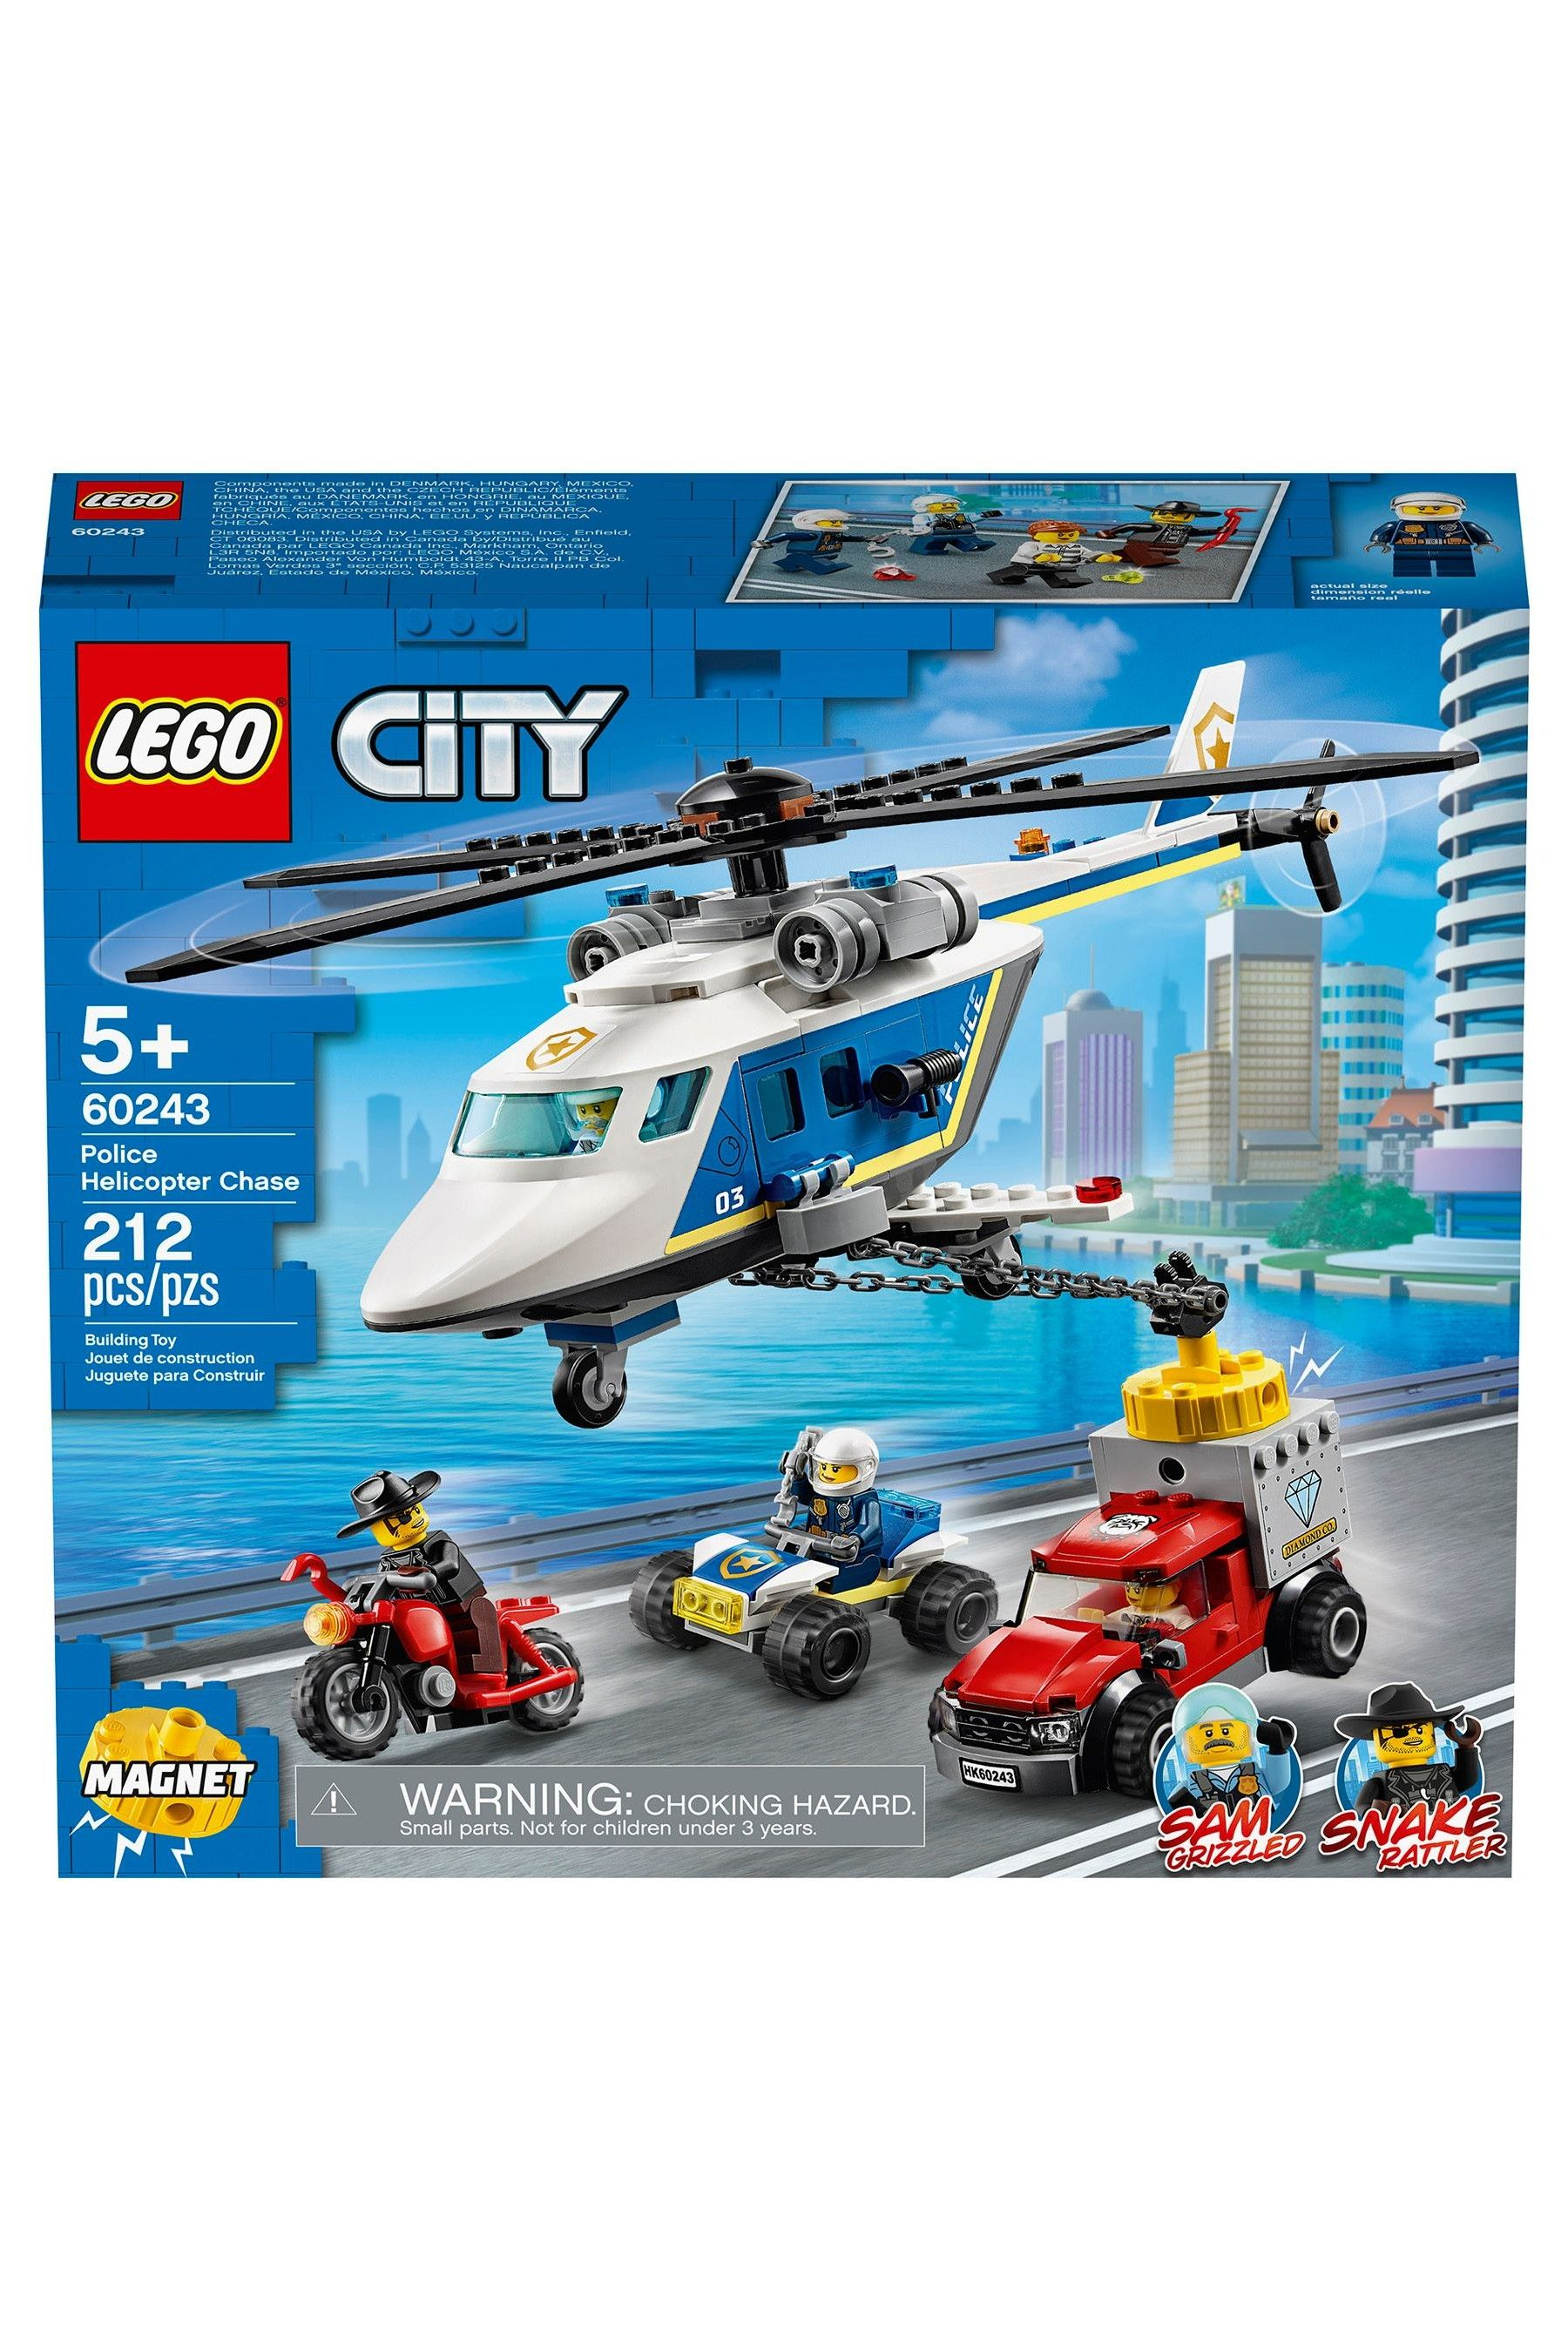 Lego City Police Police Helicopter Chase 60243 In 2020 Lego City Police Lego City Lego City Police Sets